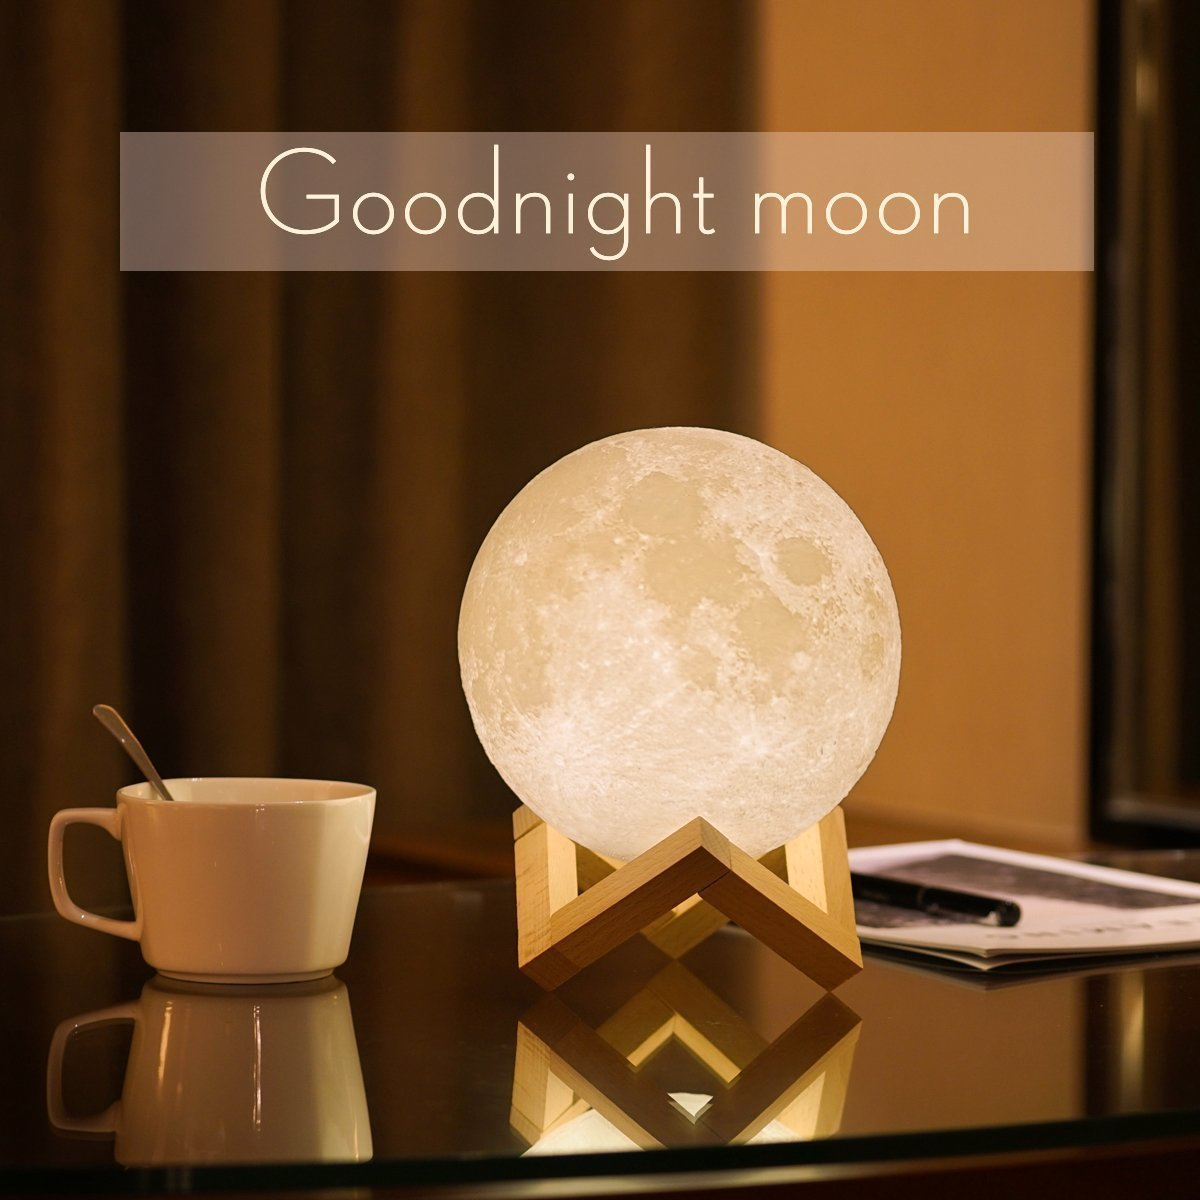 3d moon lampusb led night light magical lunar table lamp moonlight 3d moon lampusb led night light magical lunar table lamp moonlight gift two tone touch sensor with wooden holder portable box10cm394inch arubaitofo Image collections